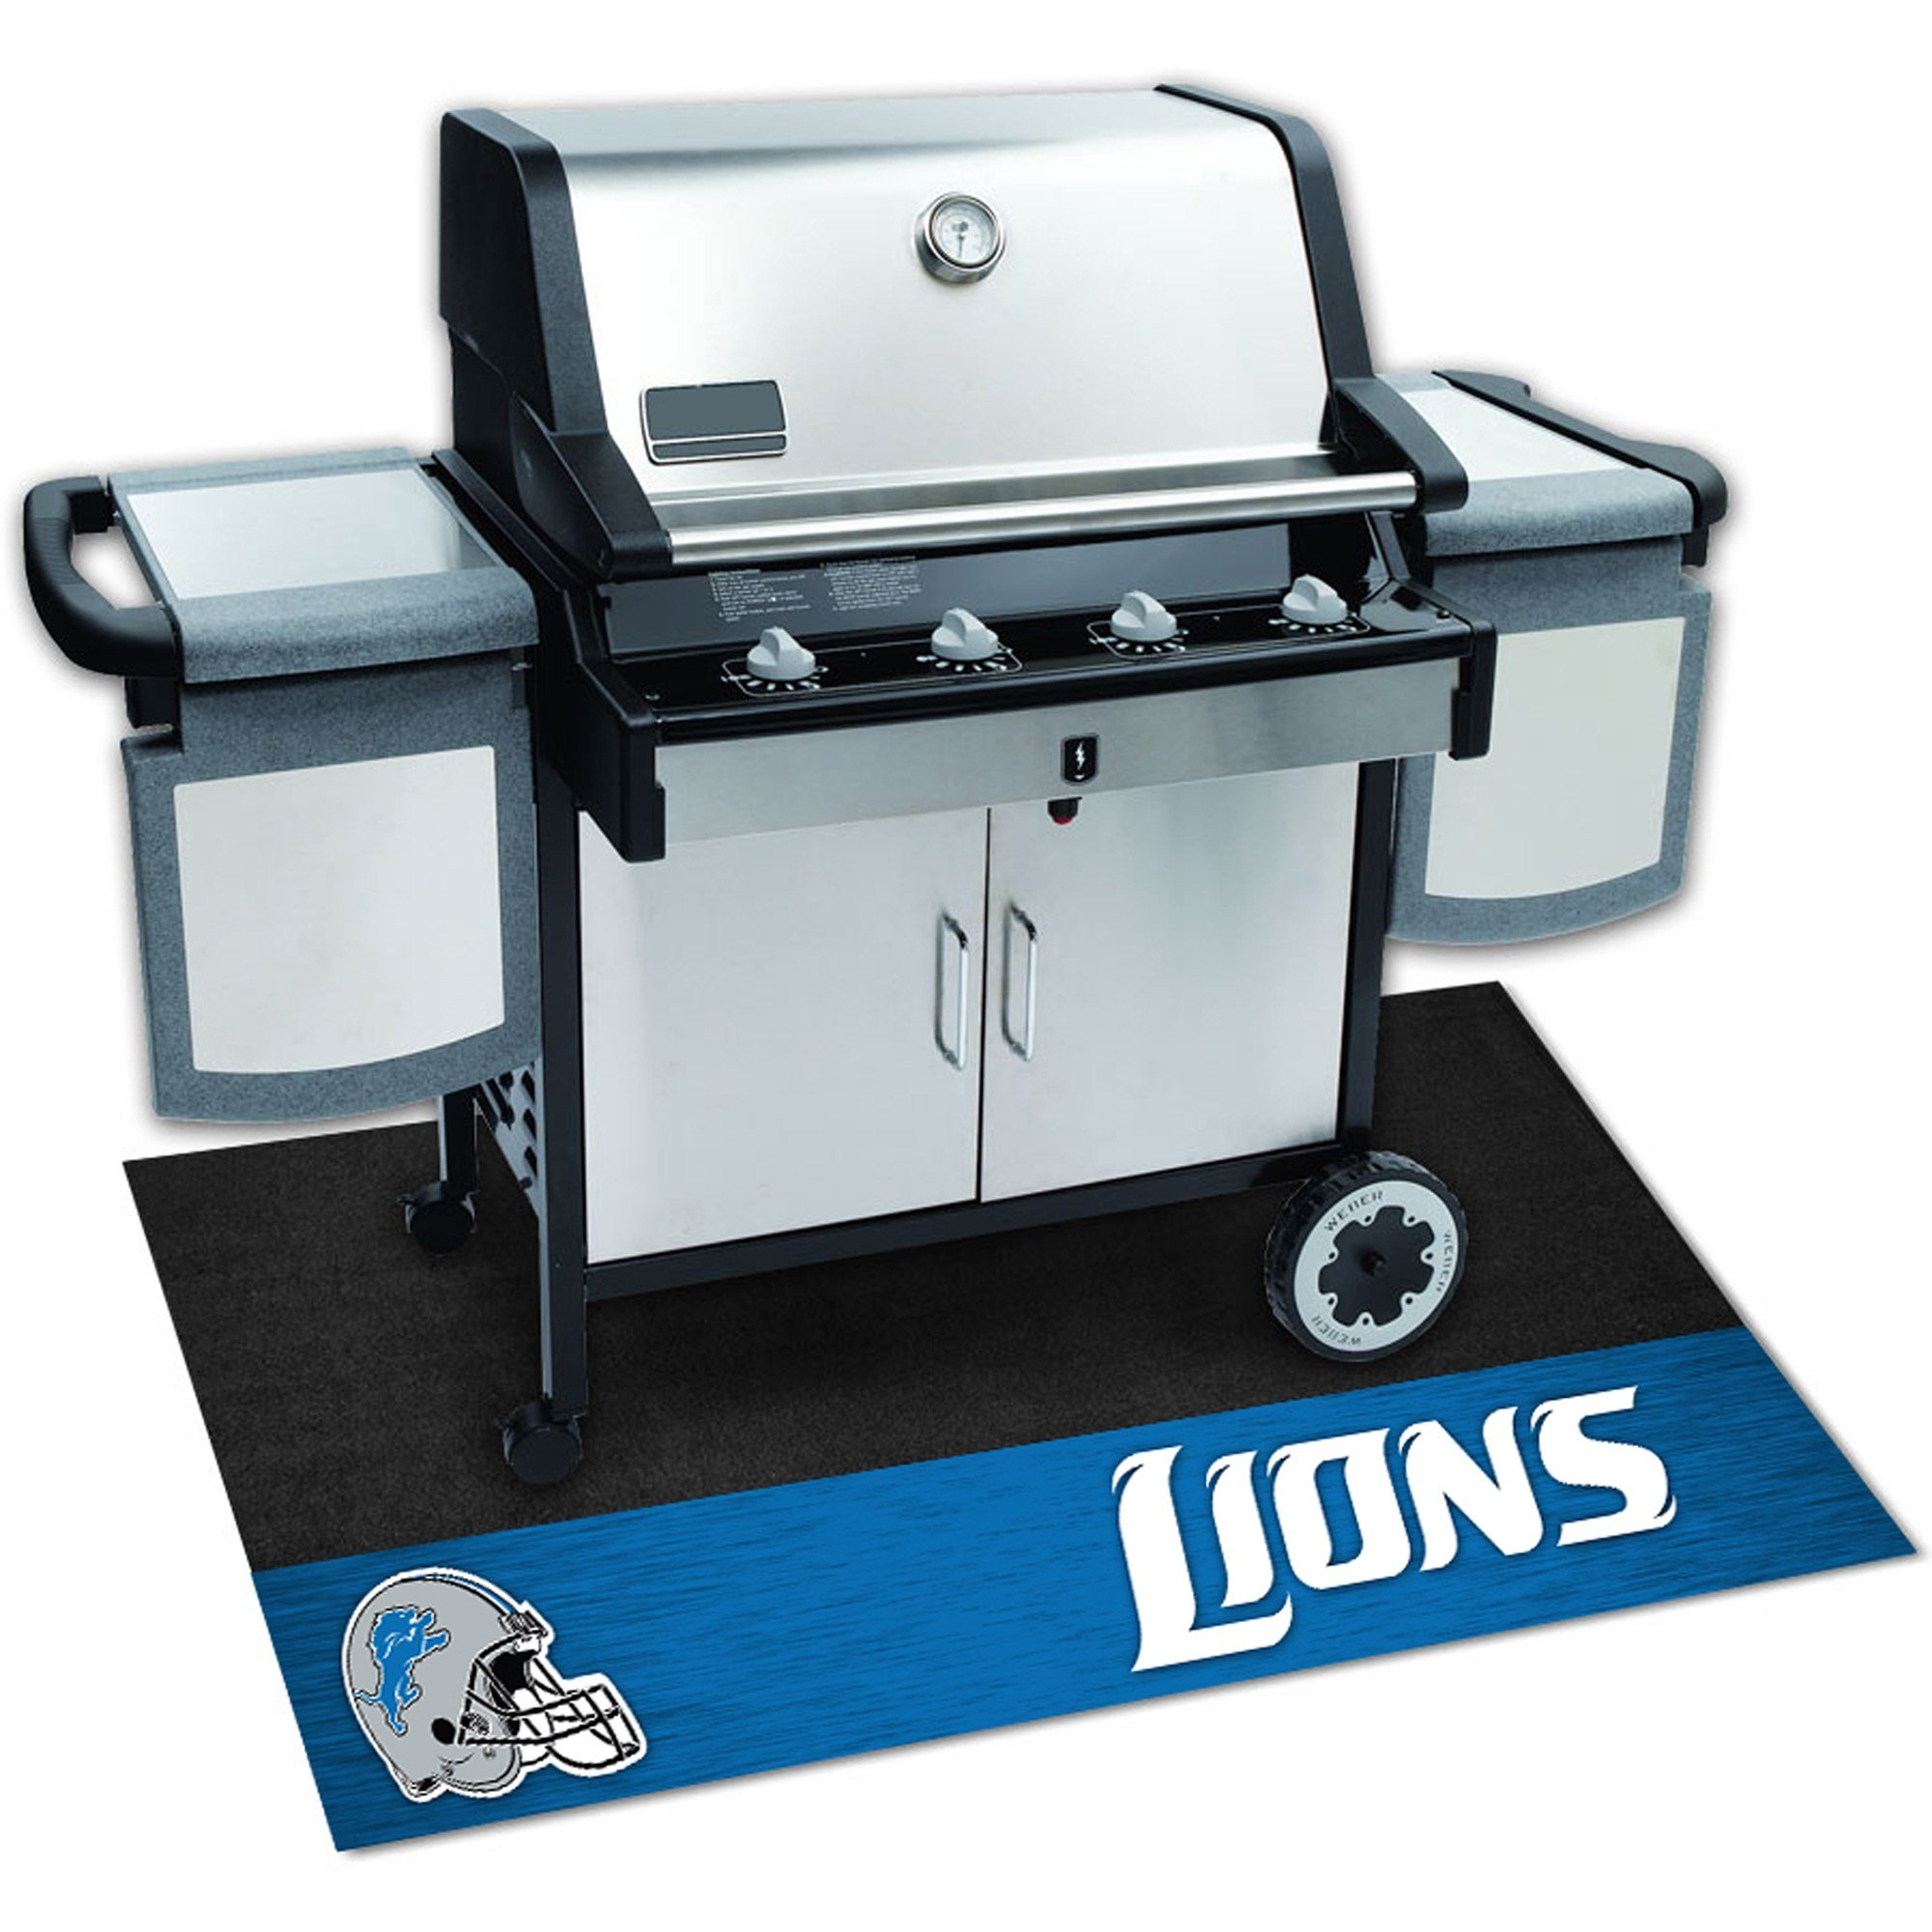 N&T 1 Piece Lions Grill Mat 42 inch, Football Themed Grill Pad Large Durable Patio Deck Floor Protection Team Logo Fan Merchandise Athletic Team Spirit Fan Black, Padded Vinyl